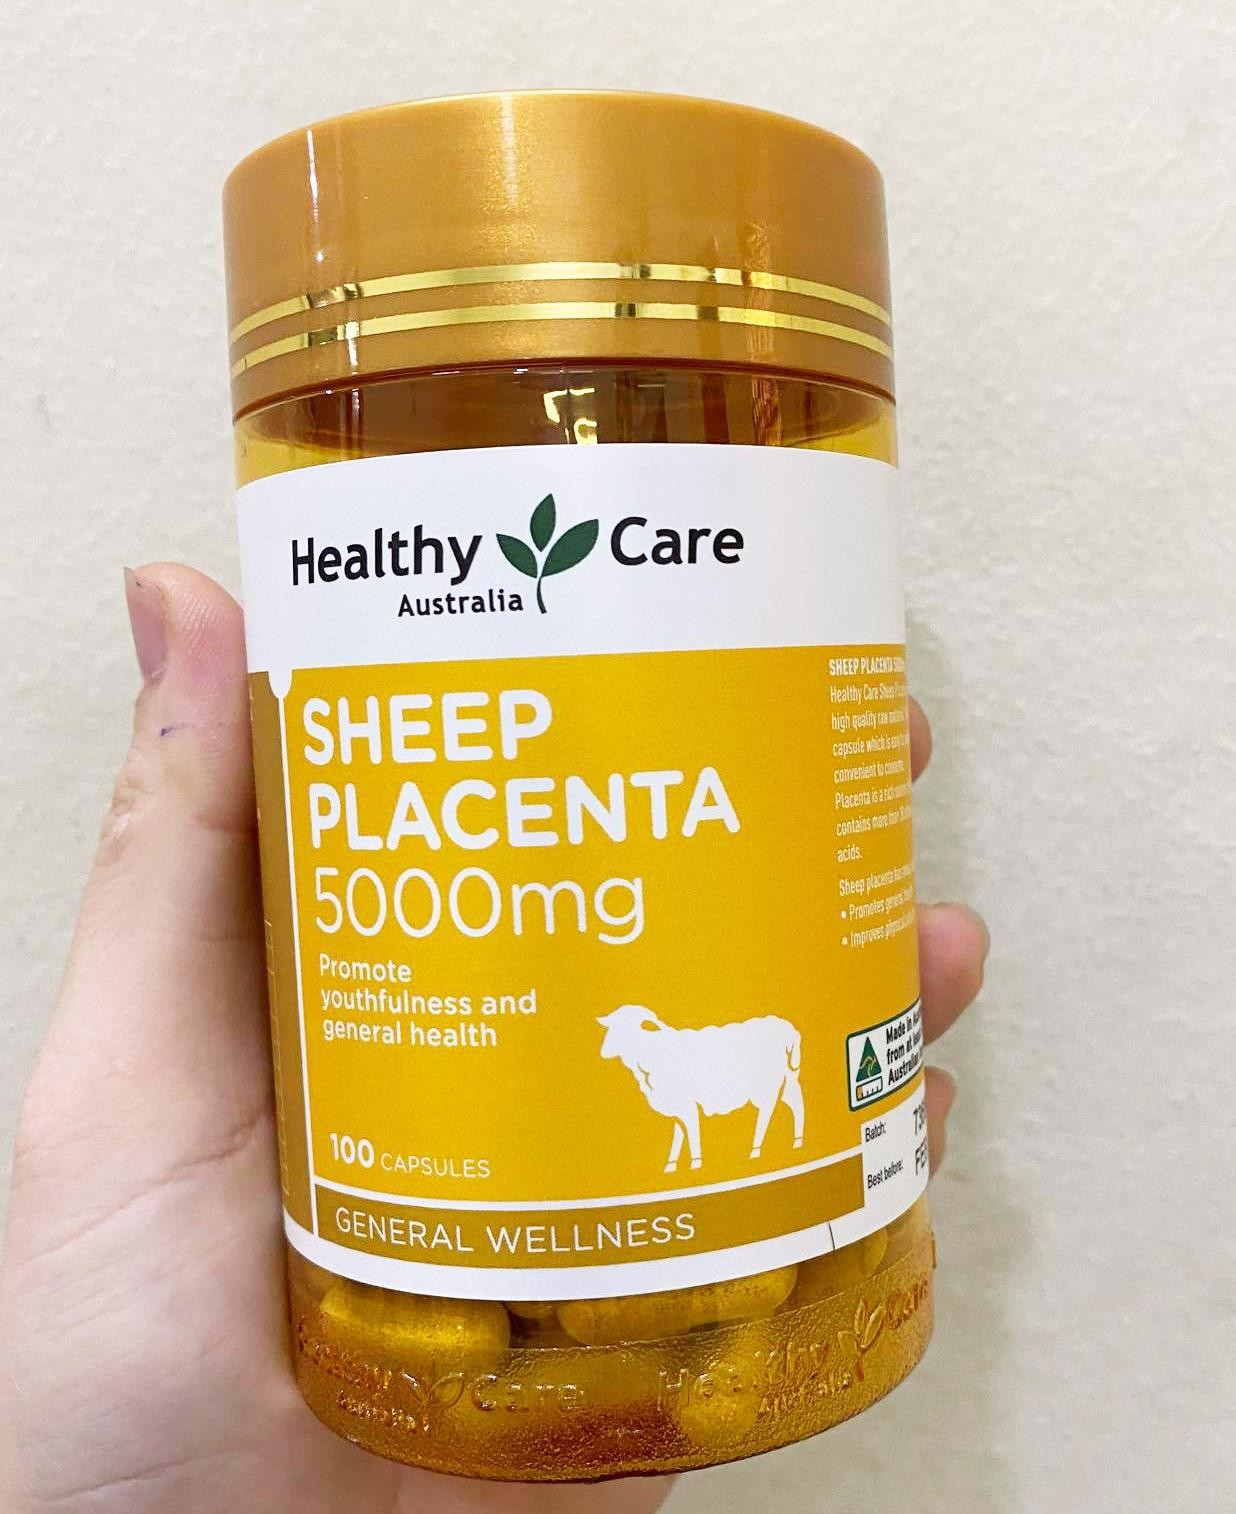 Sheep Placenta 5000mg, nhau thai cừu Sheep Placenta, viên uống nhau thai cừu Sheep Placenta 5000mg